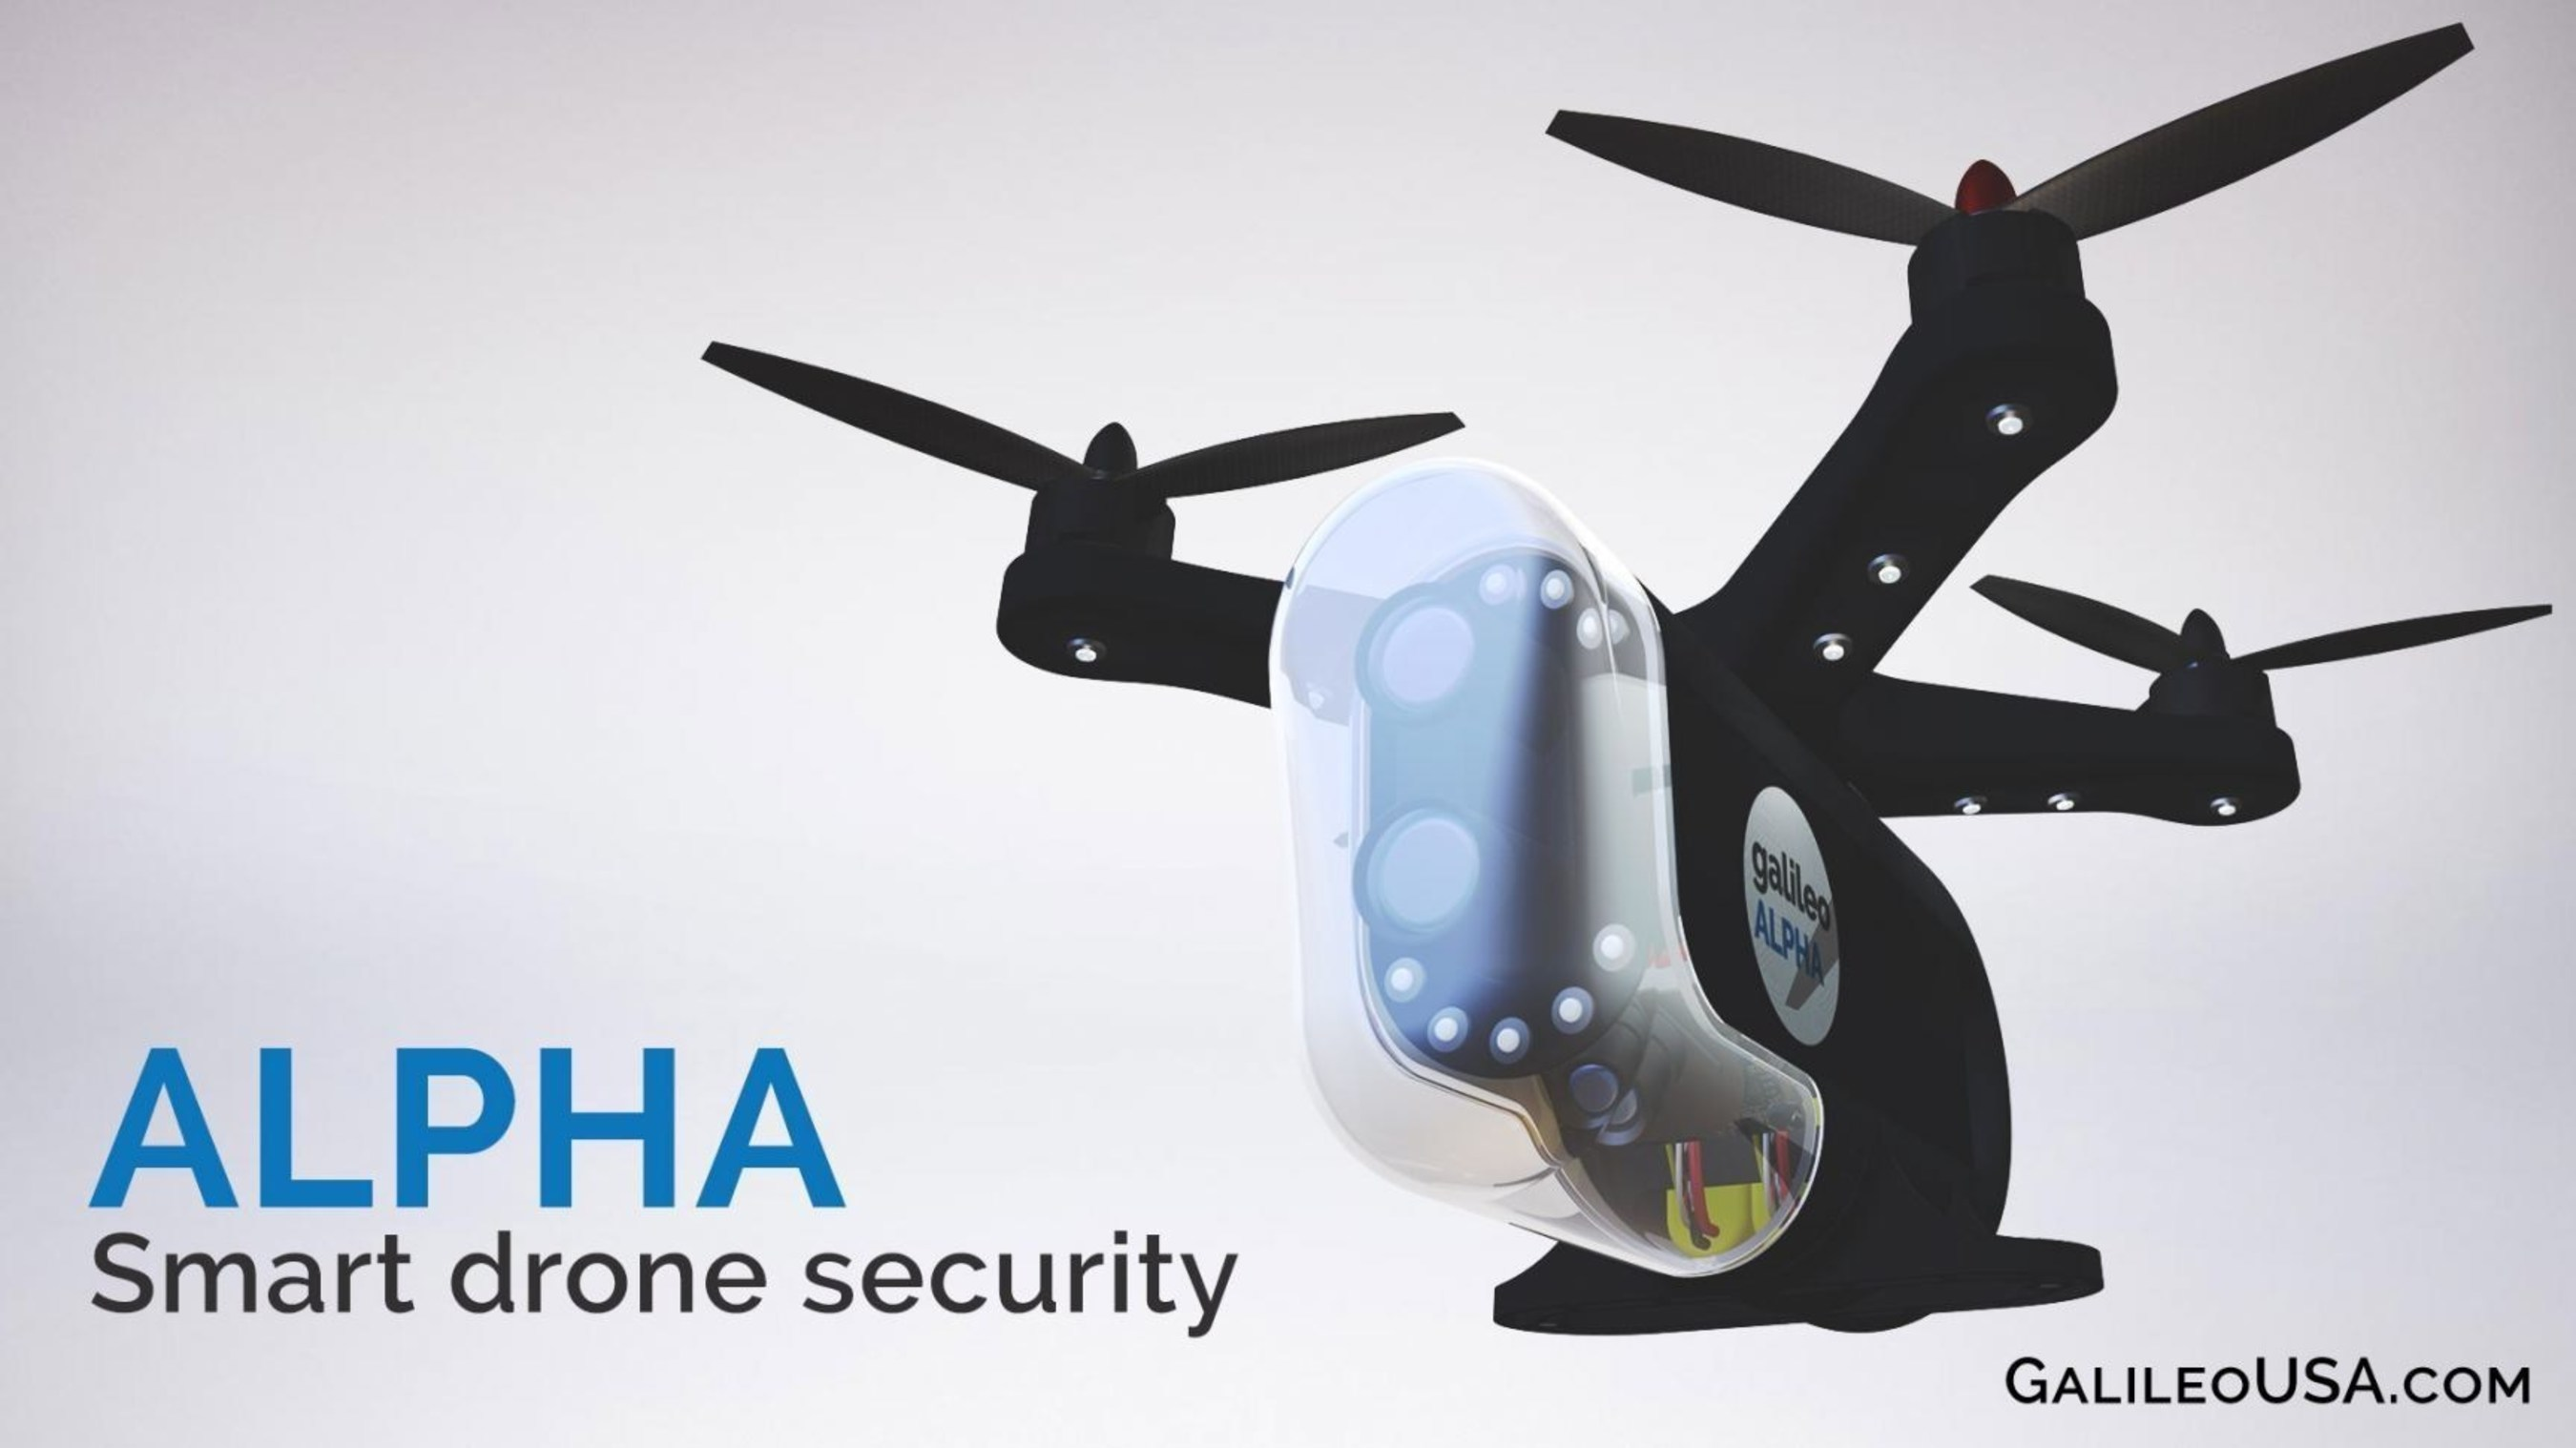 Galileo thinks their smart drone should protect your home and business. Is this the future of security?